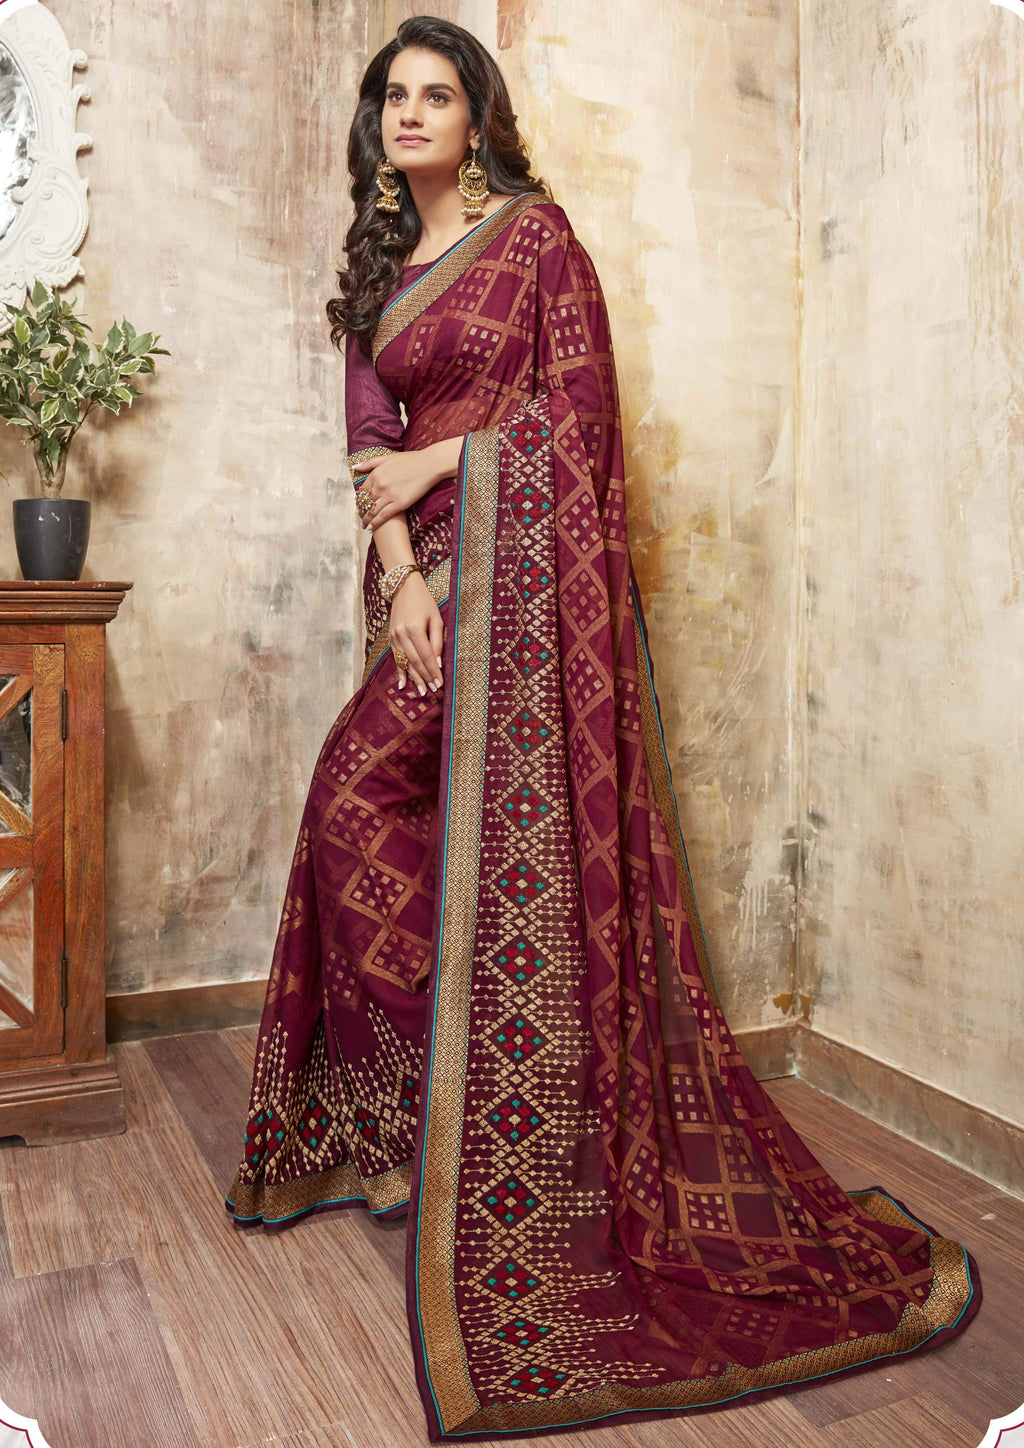 Maroon Color Wrinkle Chiffon Brasso Designer Function Wear Sarees : Gaurika Collection  NYF-1363 - YellowFashion.in